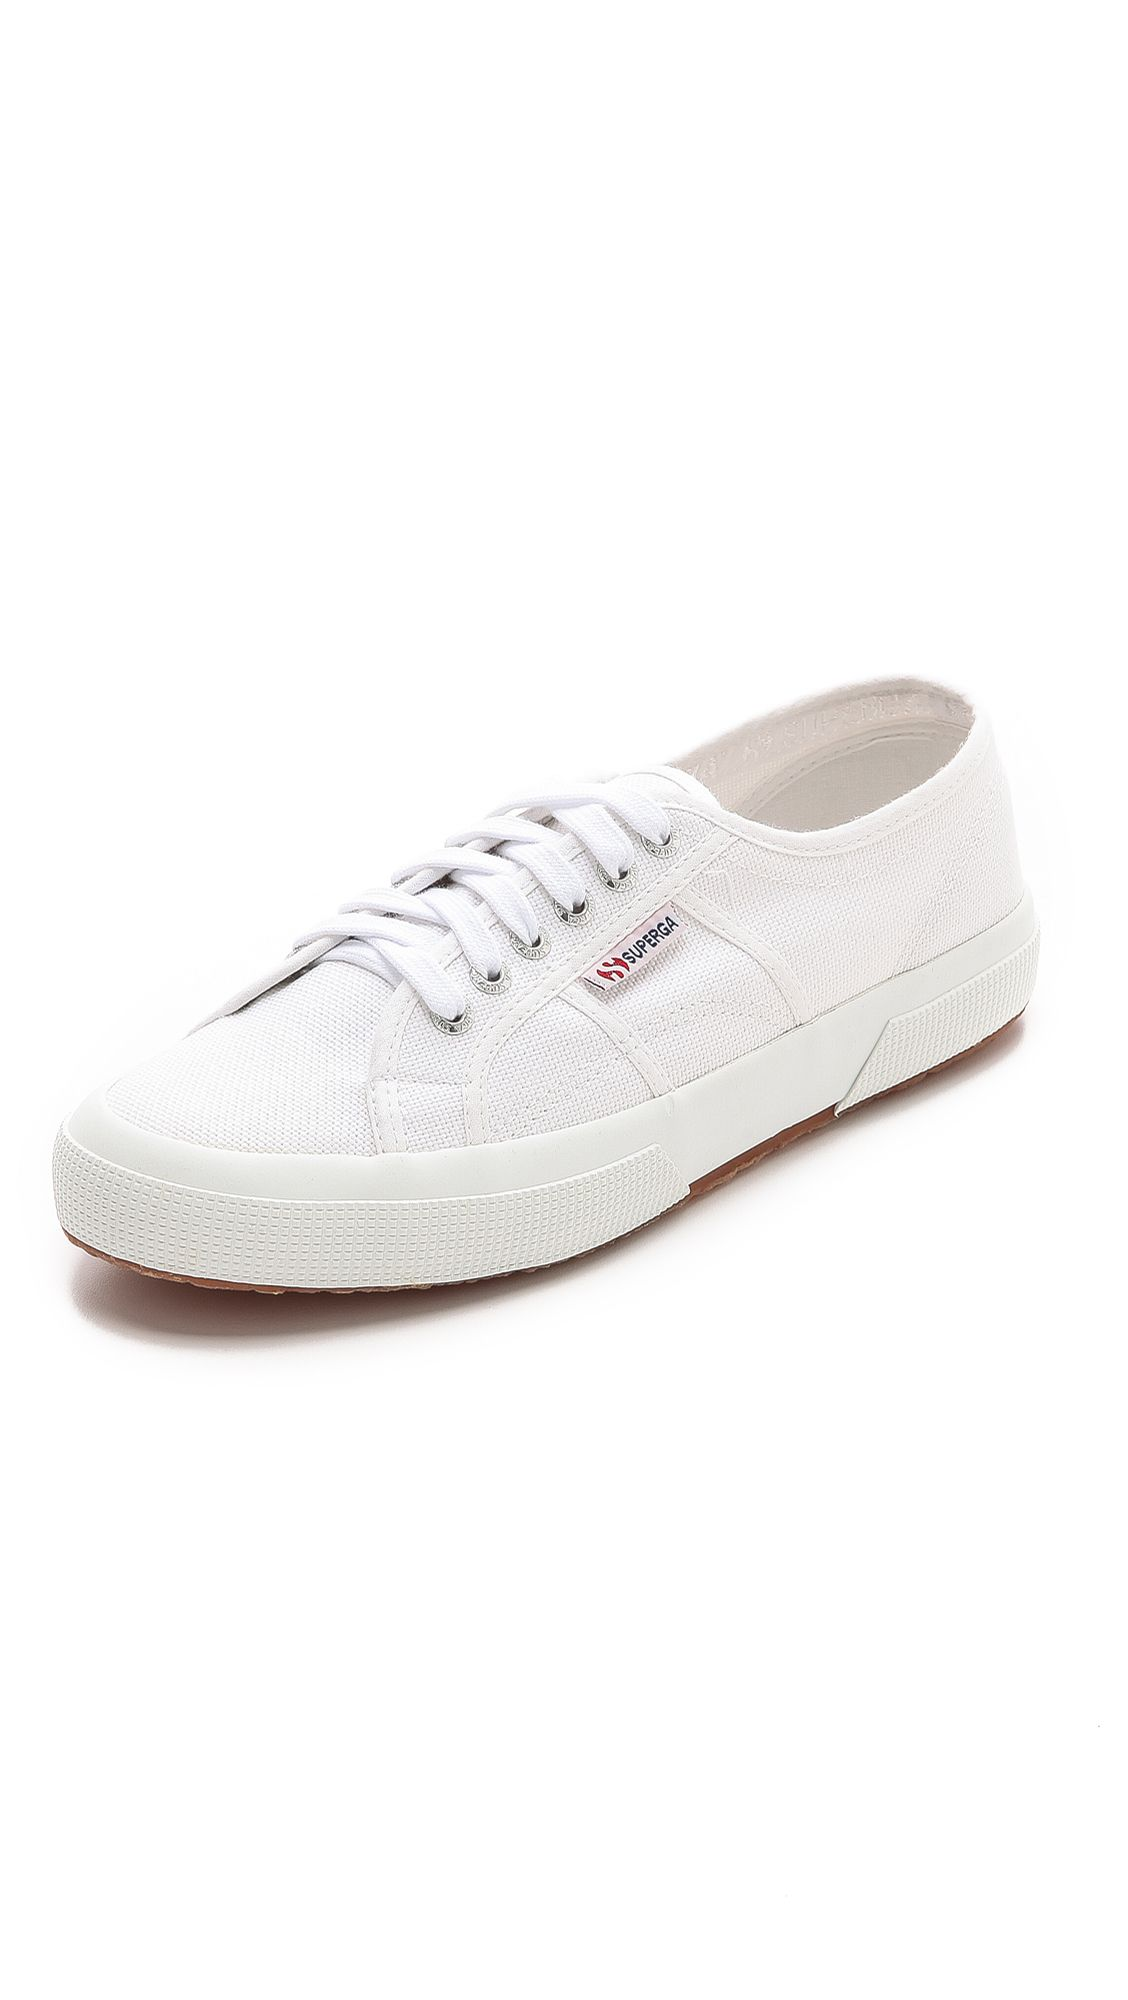 SUPERGA. Superga CotuSuperga ShoesShoes SneakersDesigner Shoes For MenClassic  ...